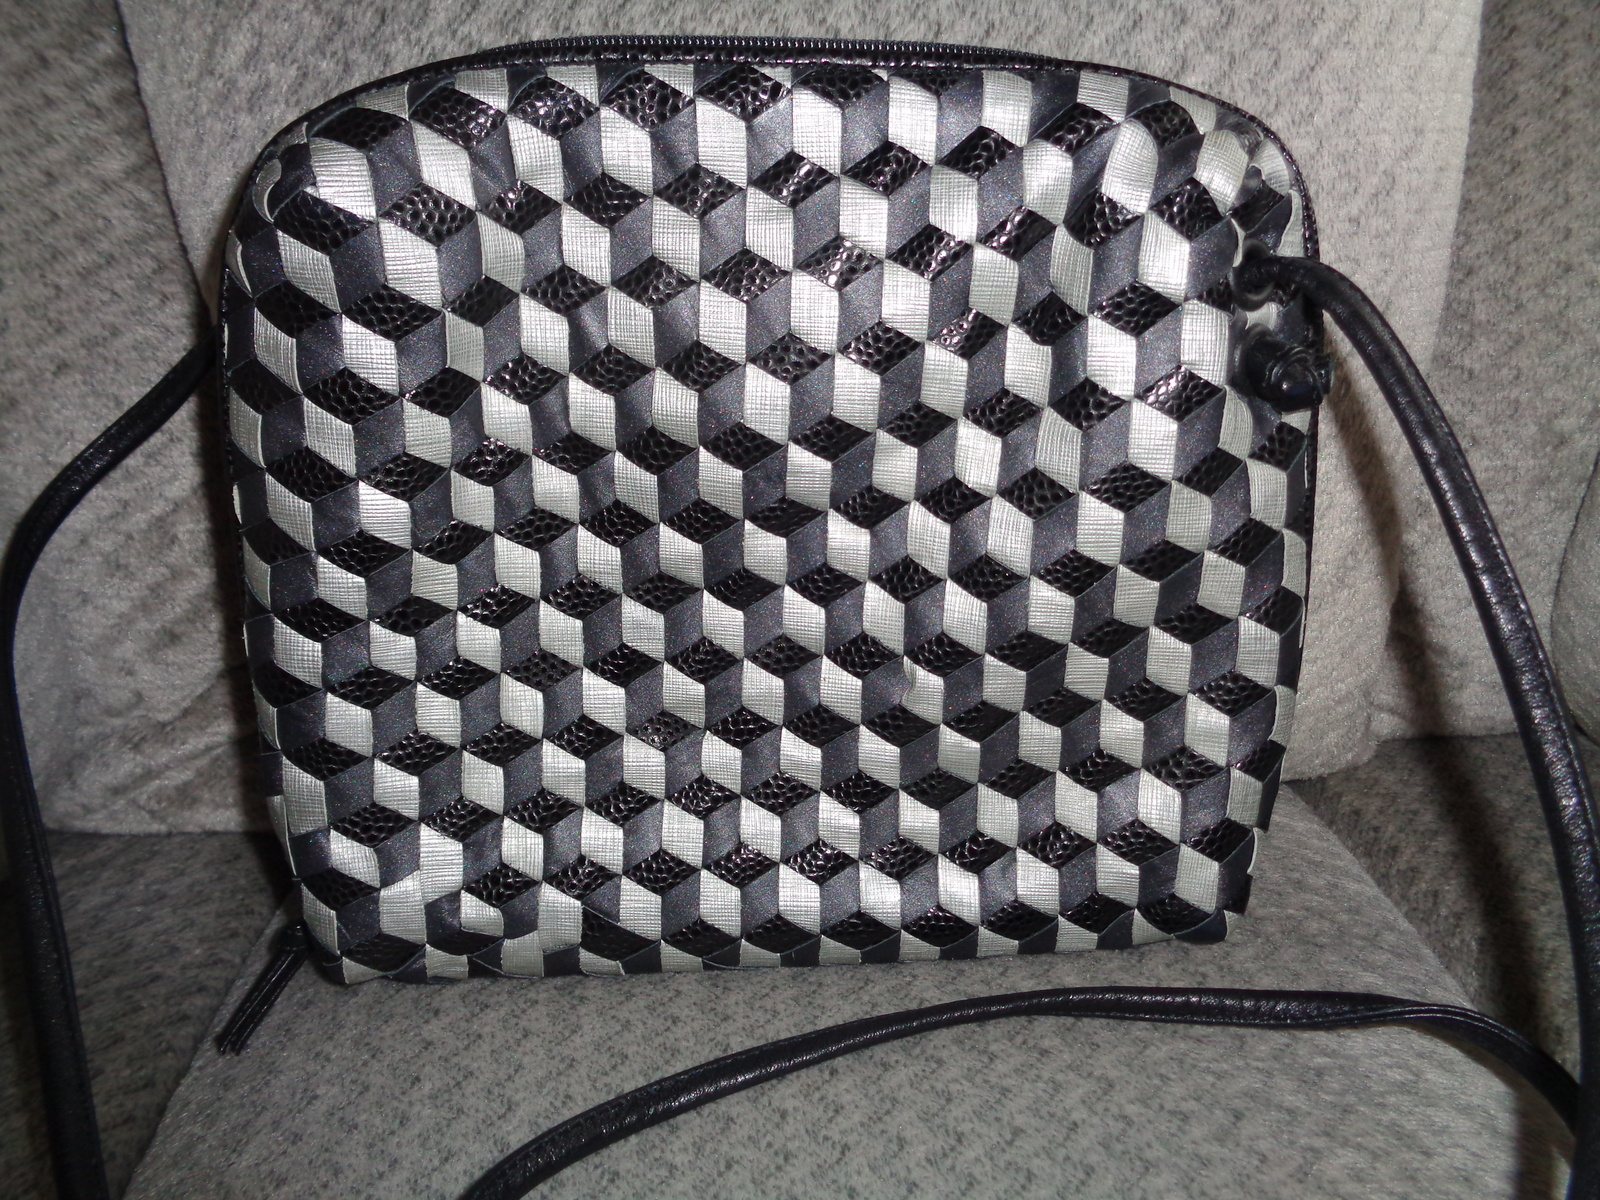 Primary image for Sharif Leather Crossbody Bag Black & Gray Squares Woven Shoulder Bag Tote